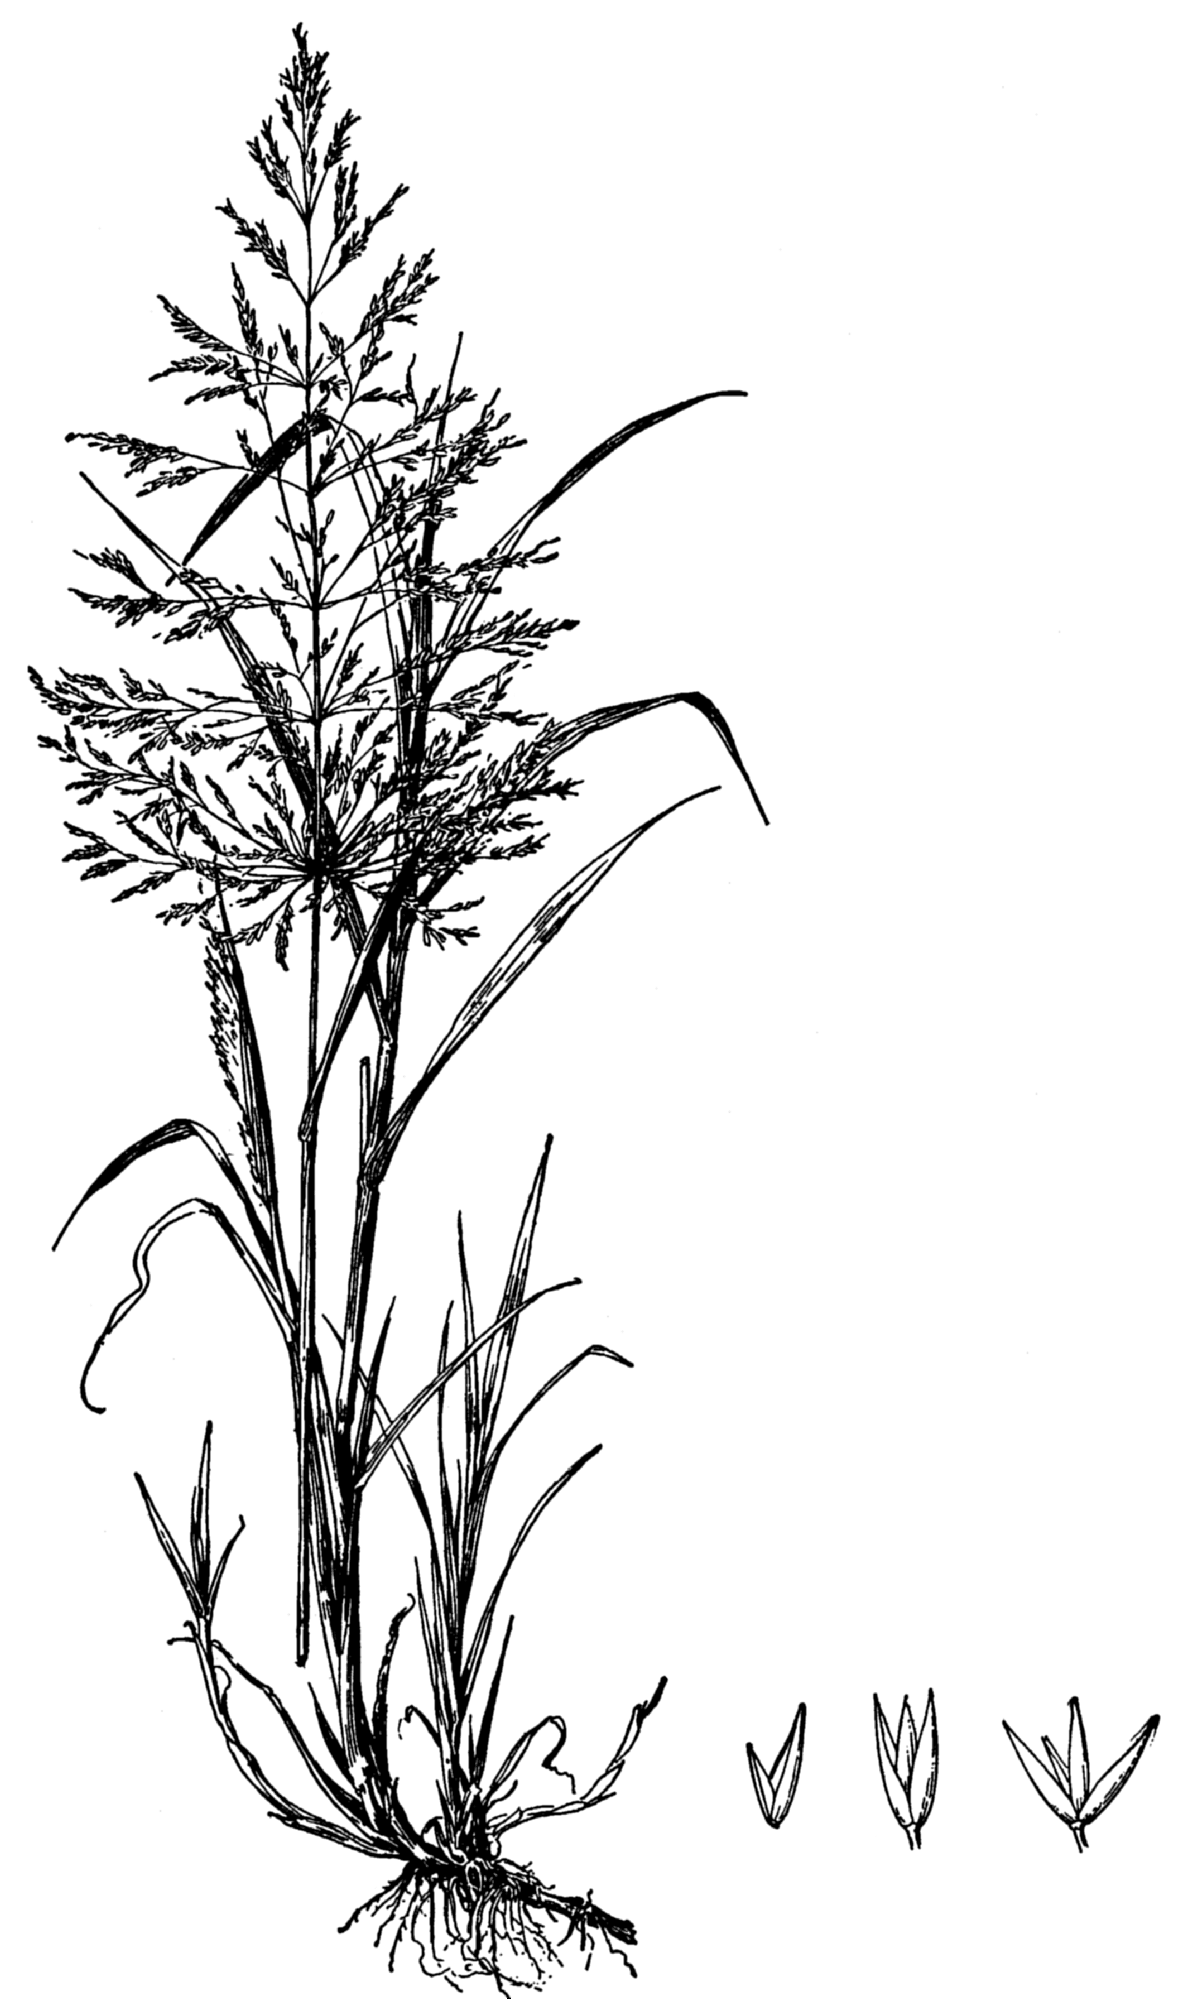 file agrostis gigantea drawing png wikipedia rose plant clipart black and white rice plant clipart black and white